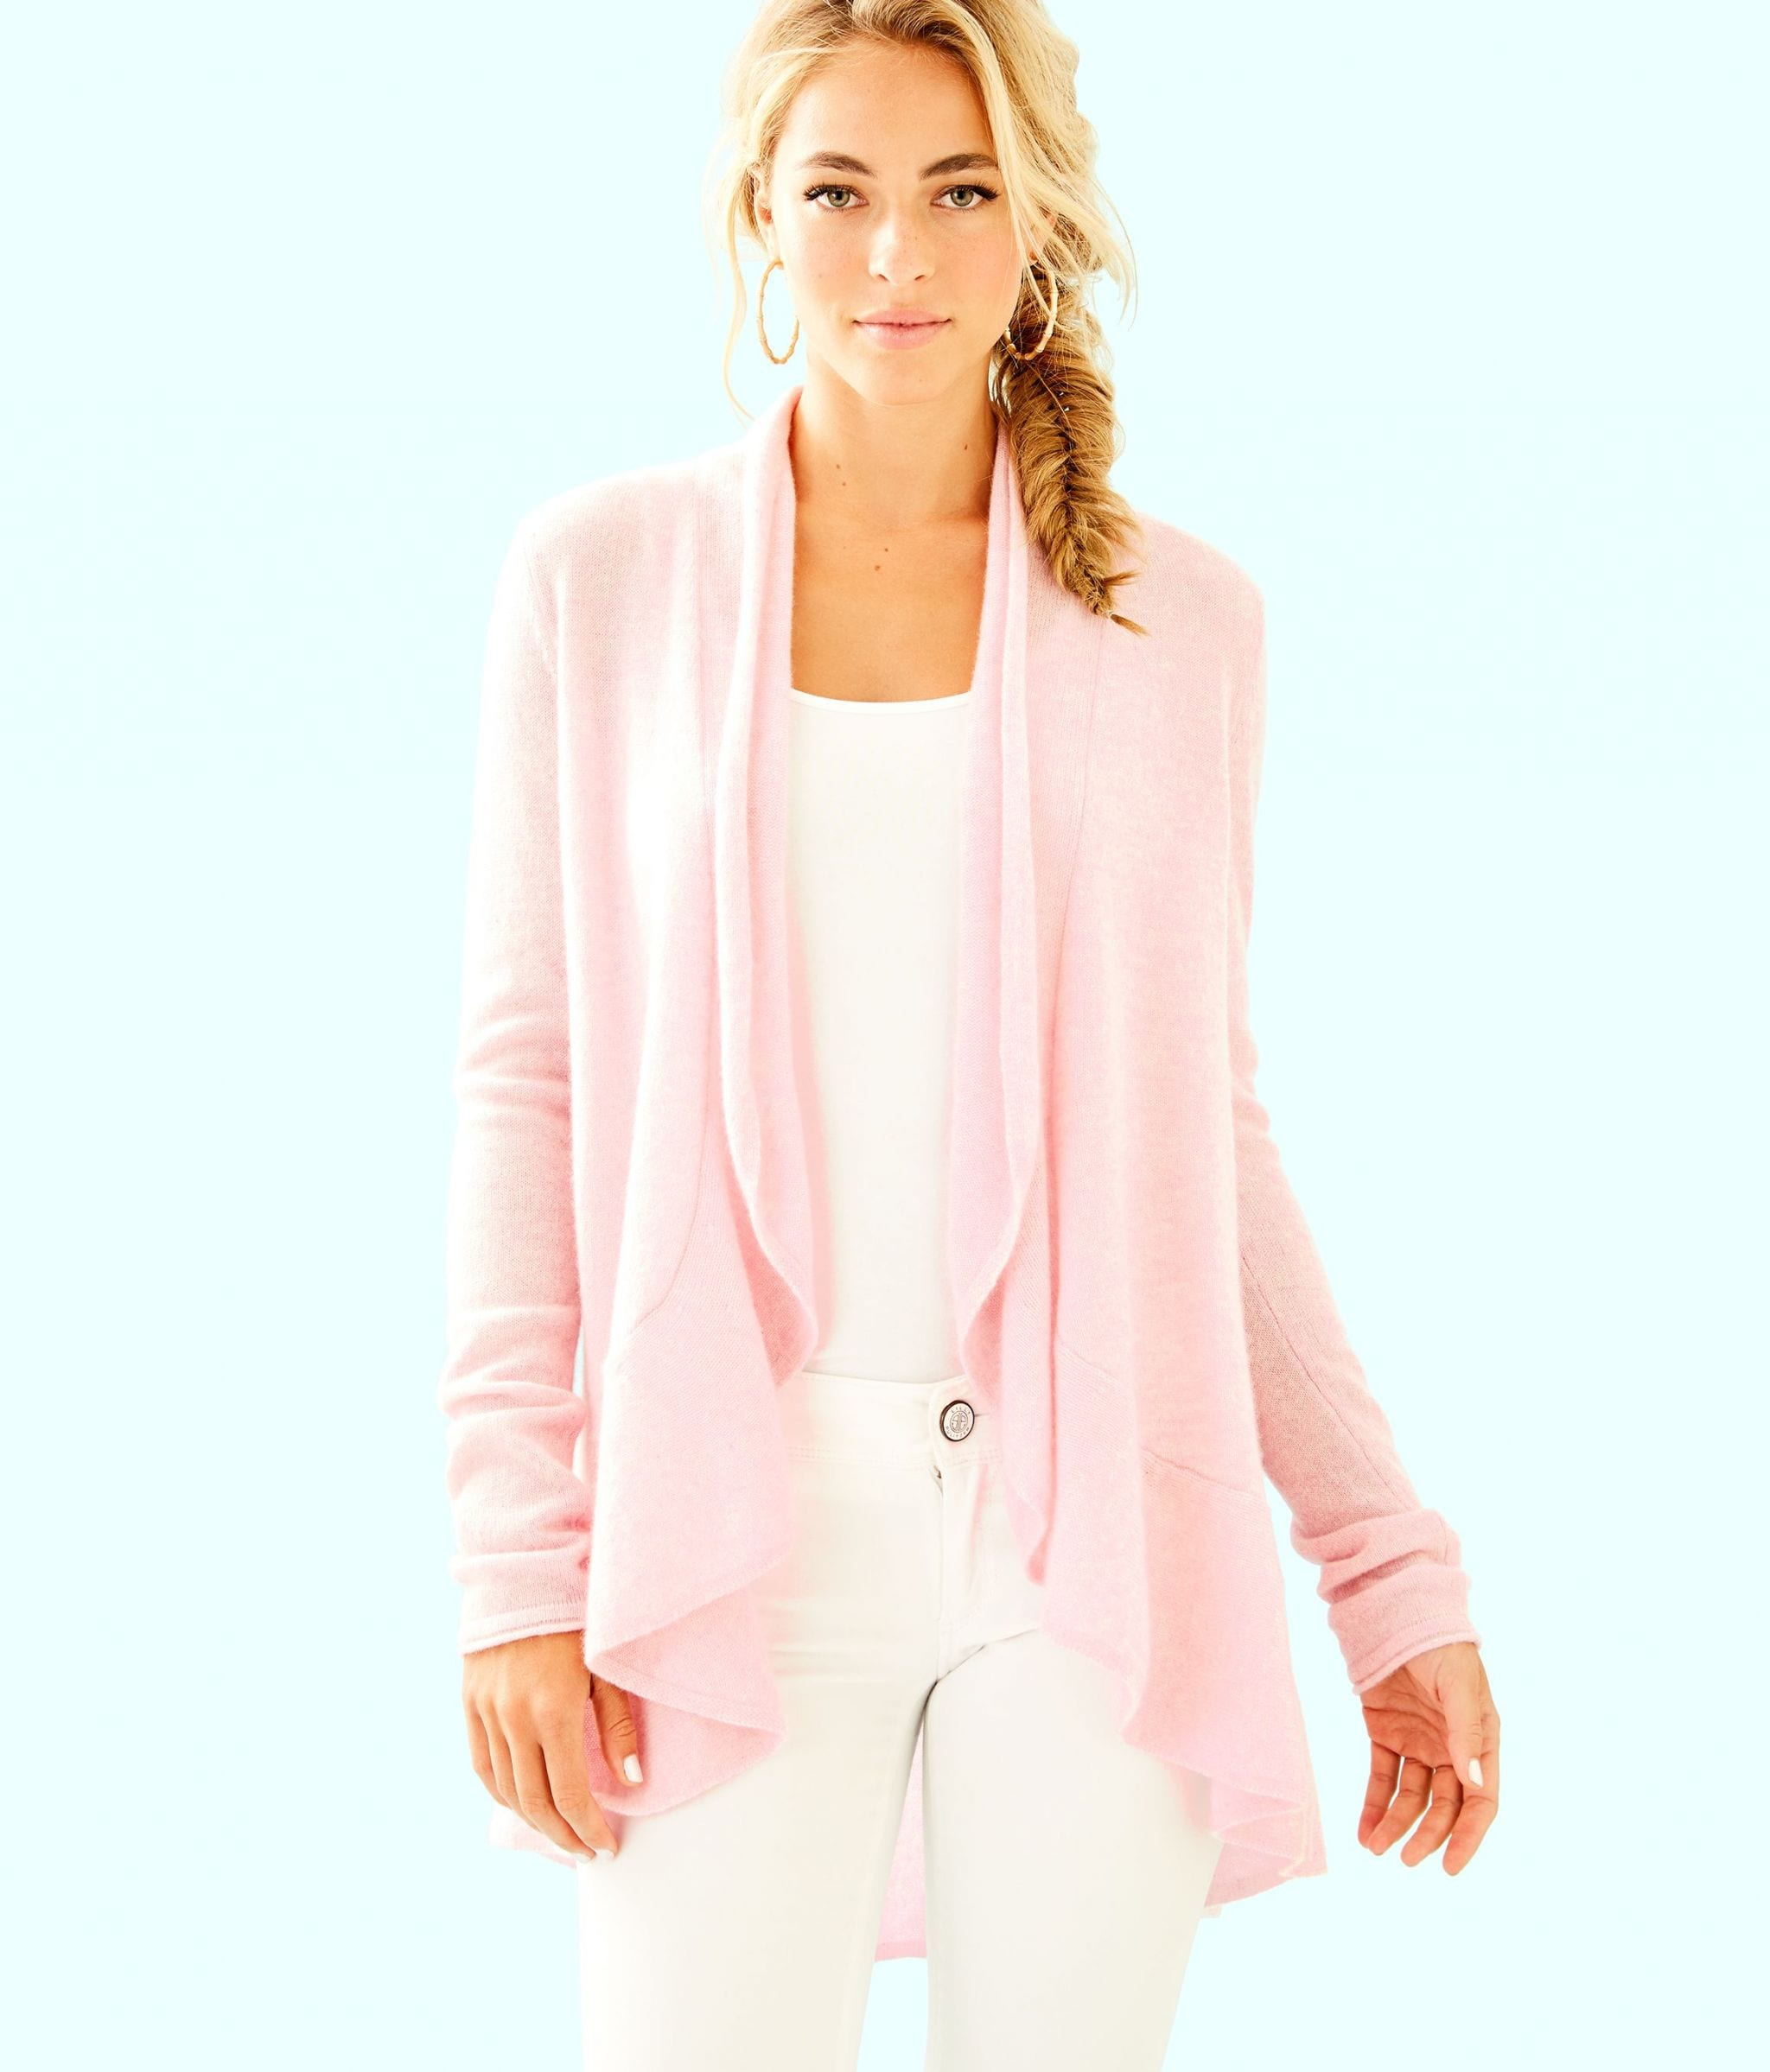 Marette Cashmere Cardigan, Originally $248, APS $99